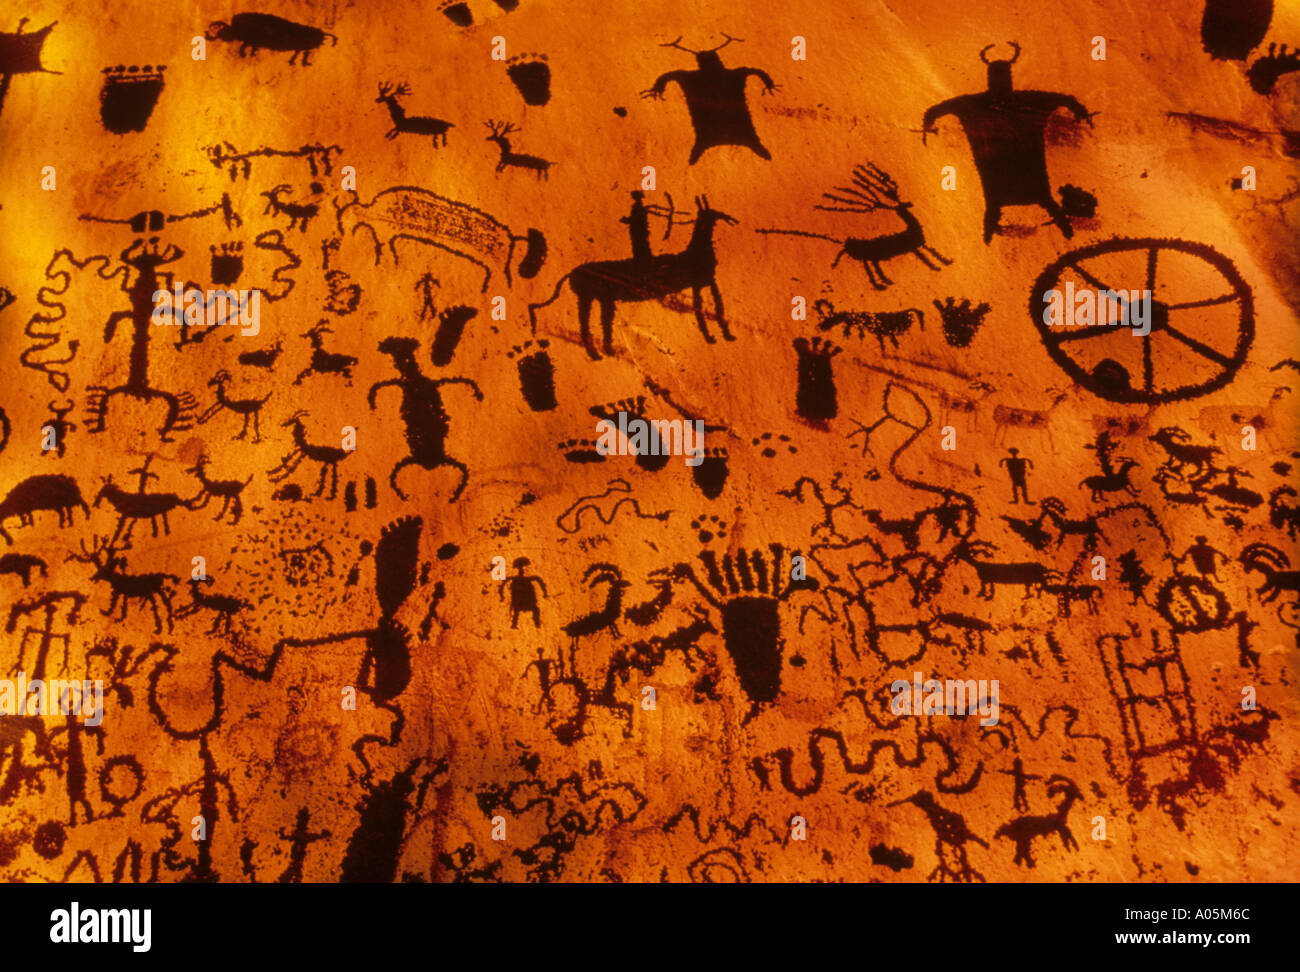 Variety of cave paintings and primitive art depicting people animals and a wheel - Stock Image